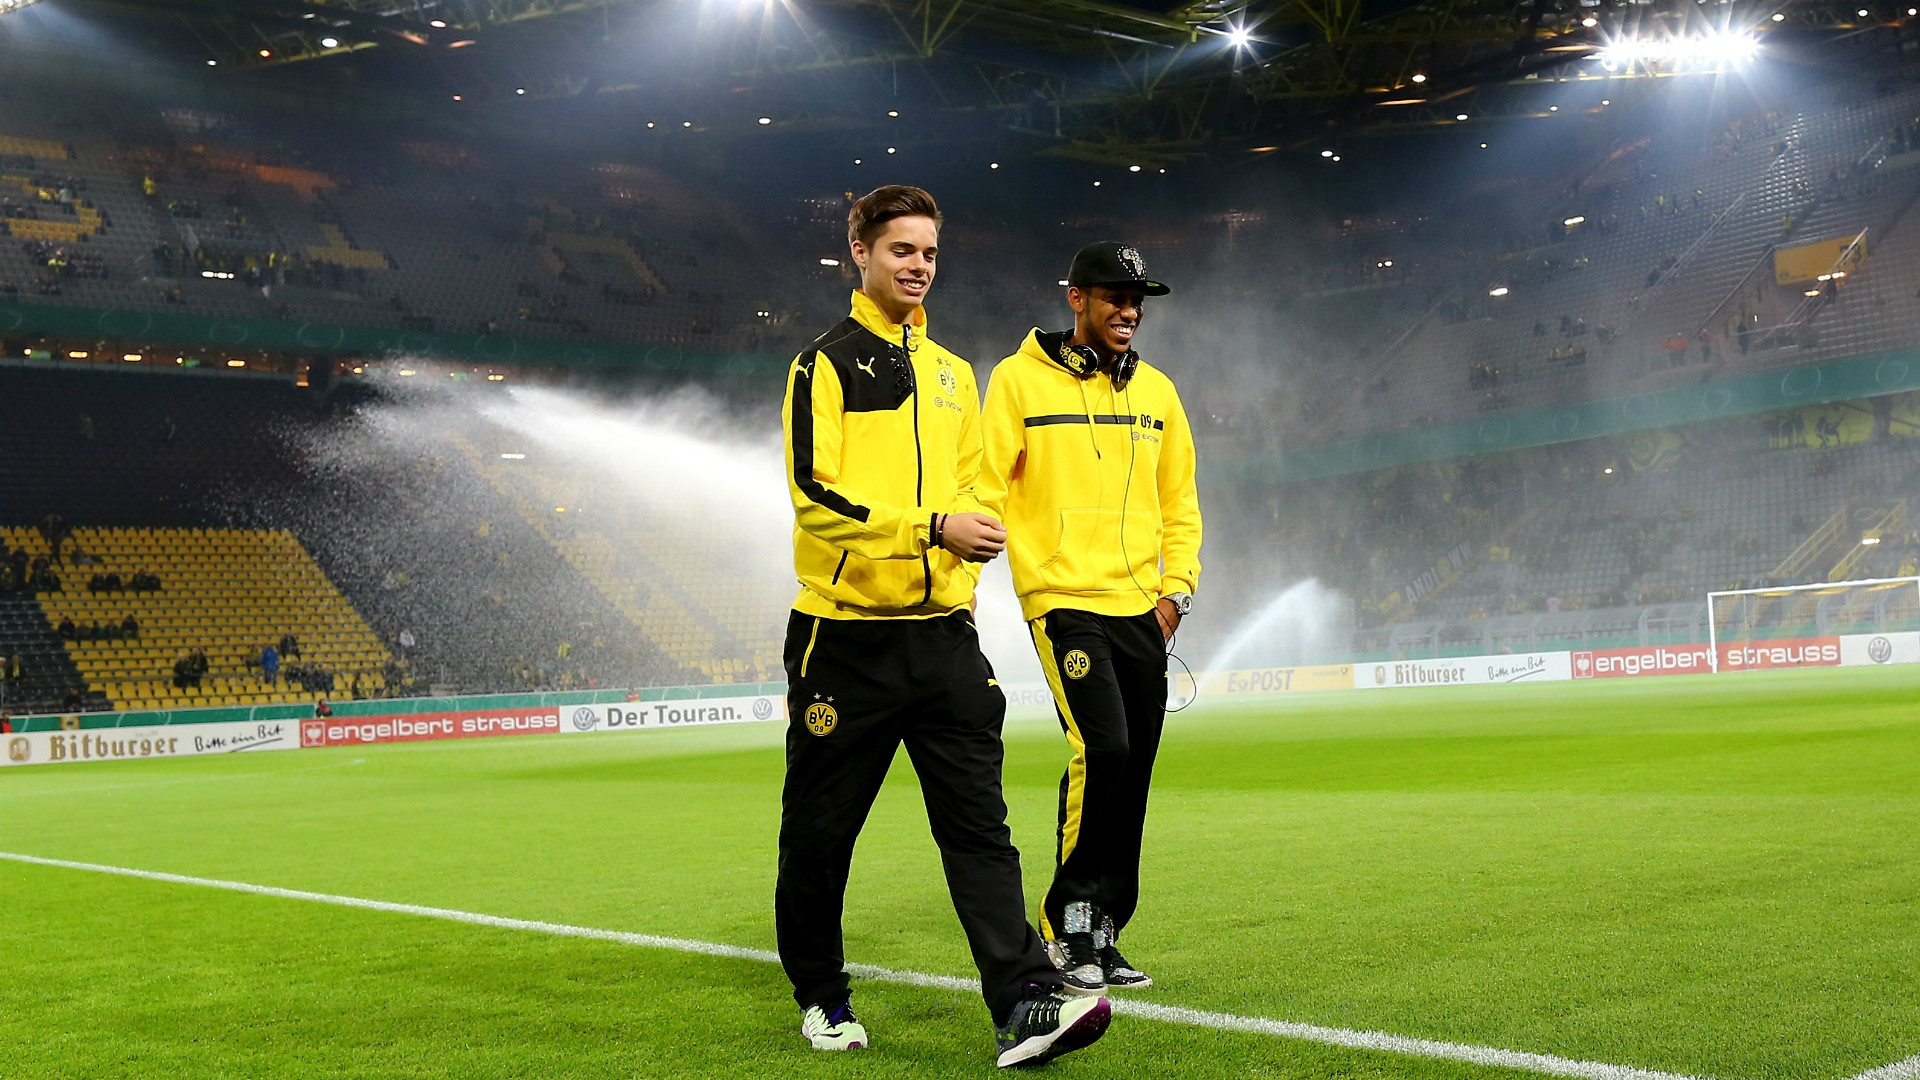 The rise of Julian Weigl The Borussia Dortmund star linked to